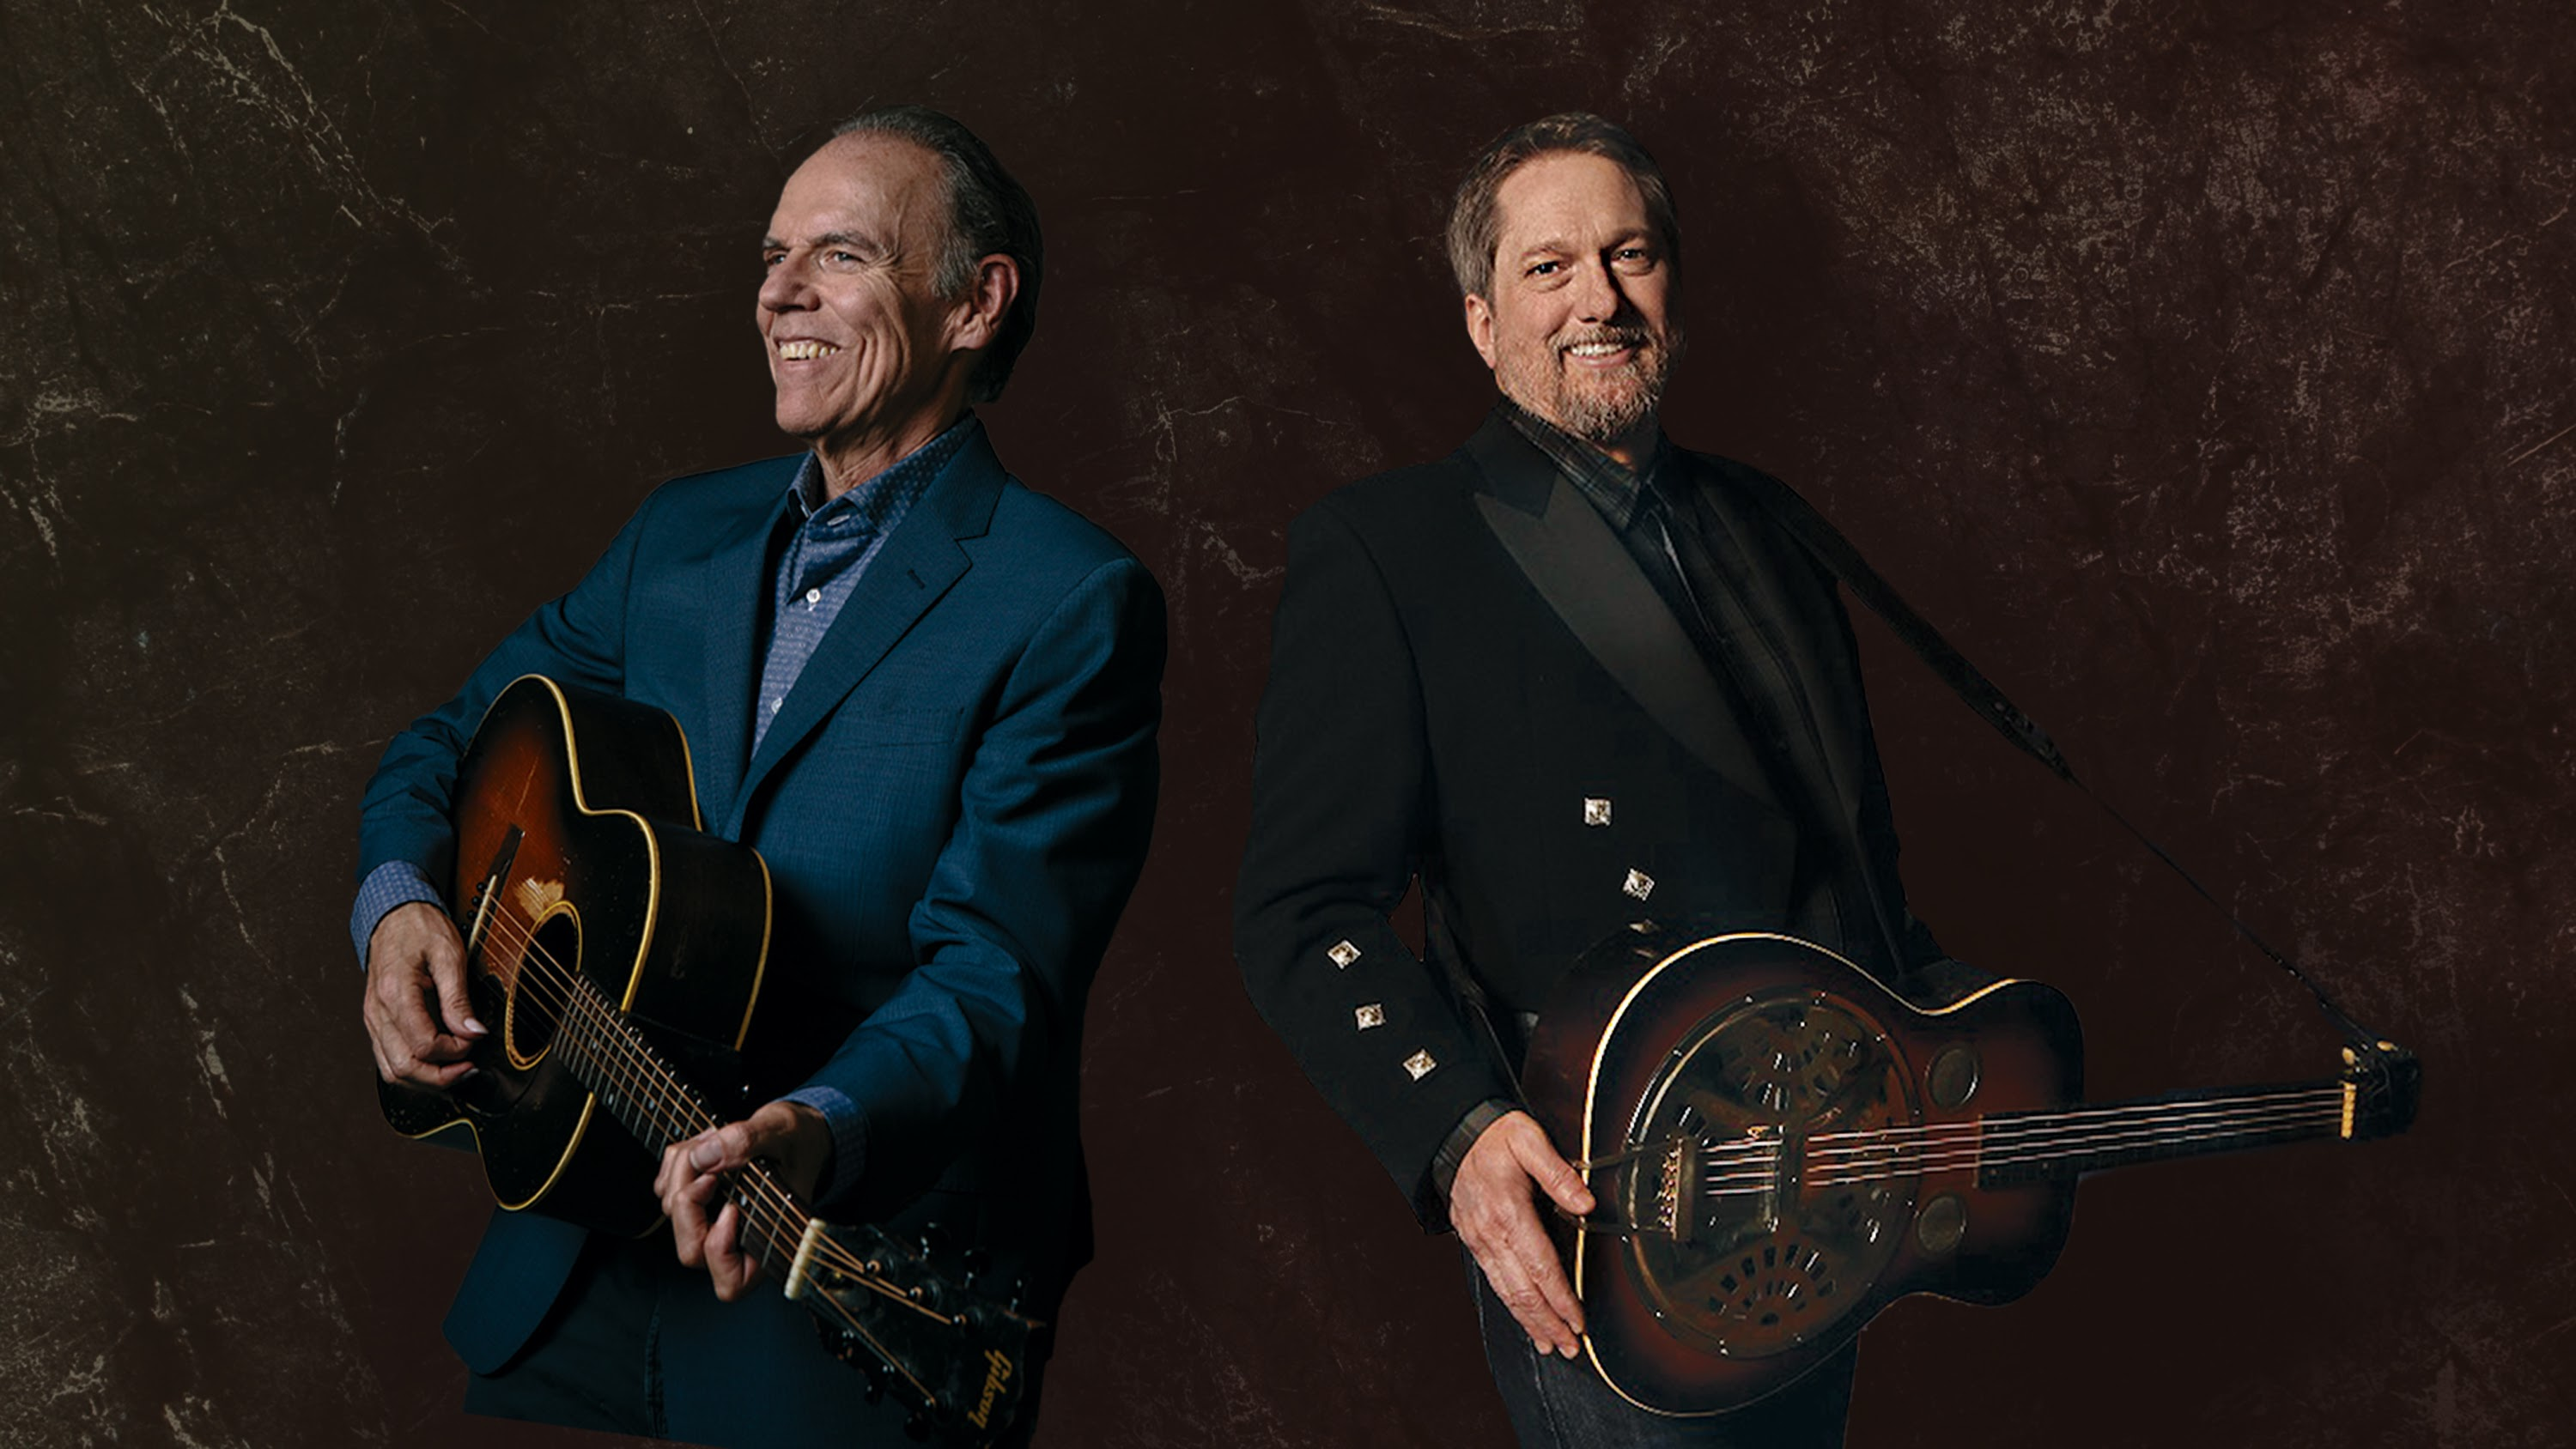 John Hiatt and Jerry Douglas to play Boulder Theater in October